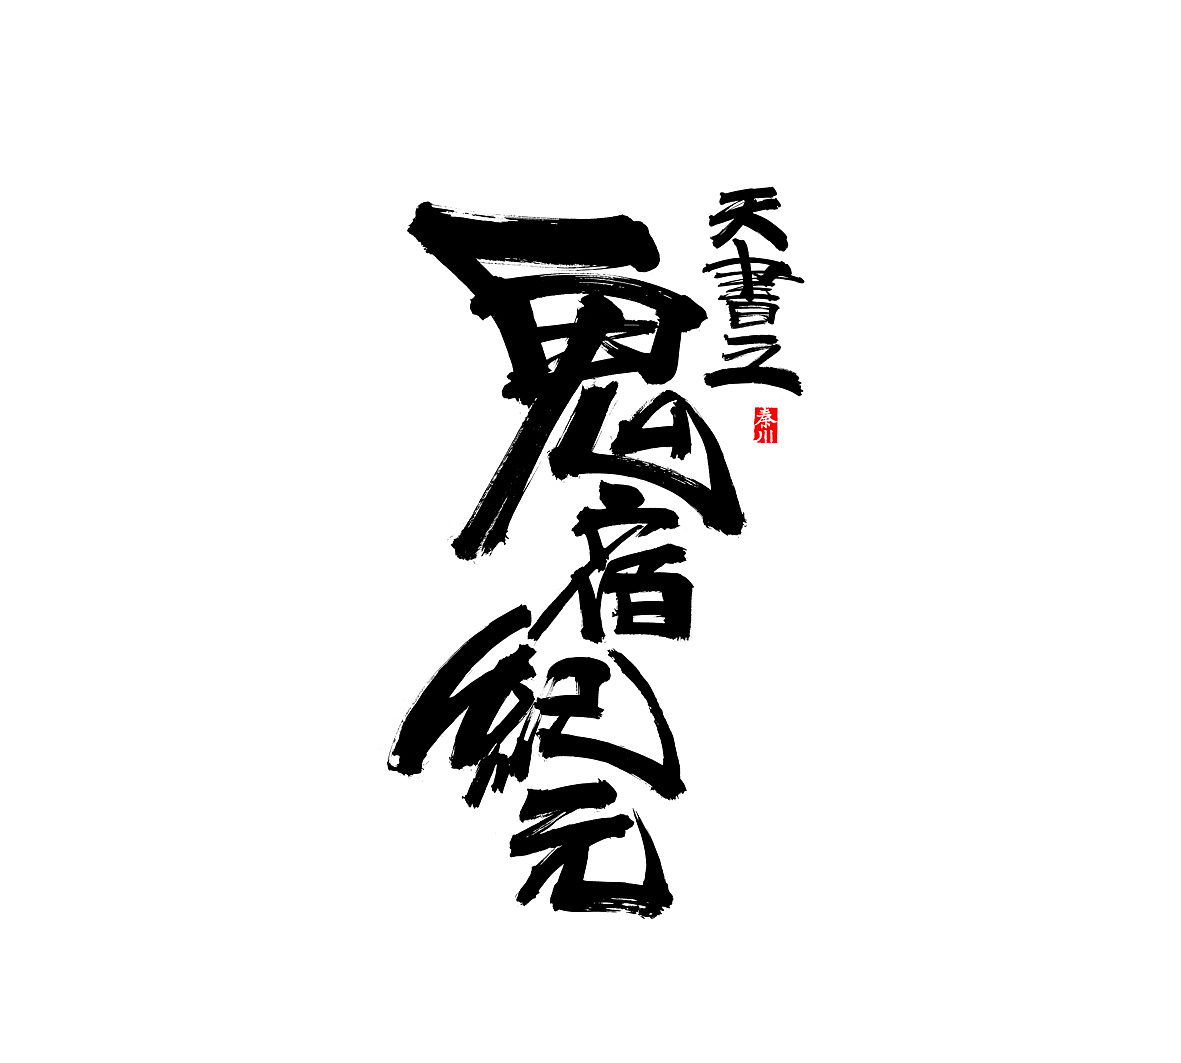 chinesefontdesign.com 2017 11 29 13 30 15 089332 12P Super cool Chinese fonts and movies combined design